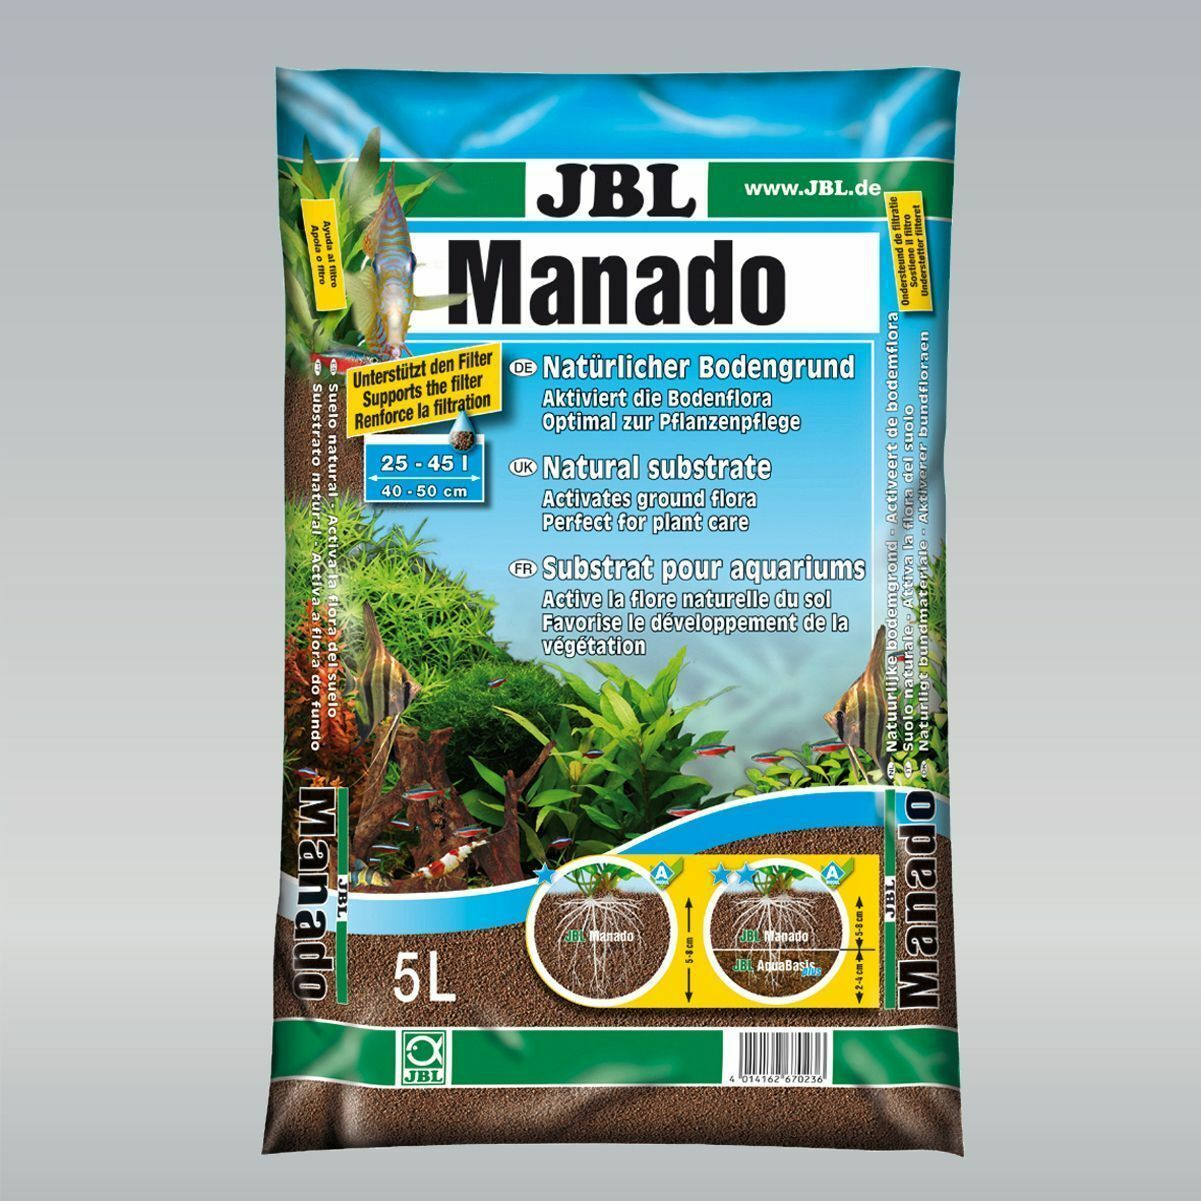 JBL Manado Natural Attractive Substrate plant planted tank aquarium sand gravel